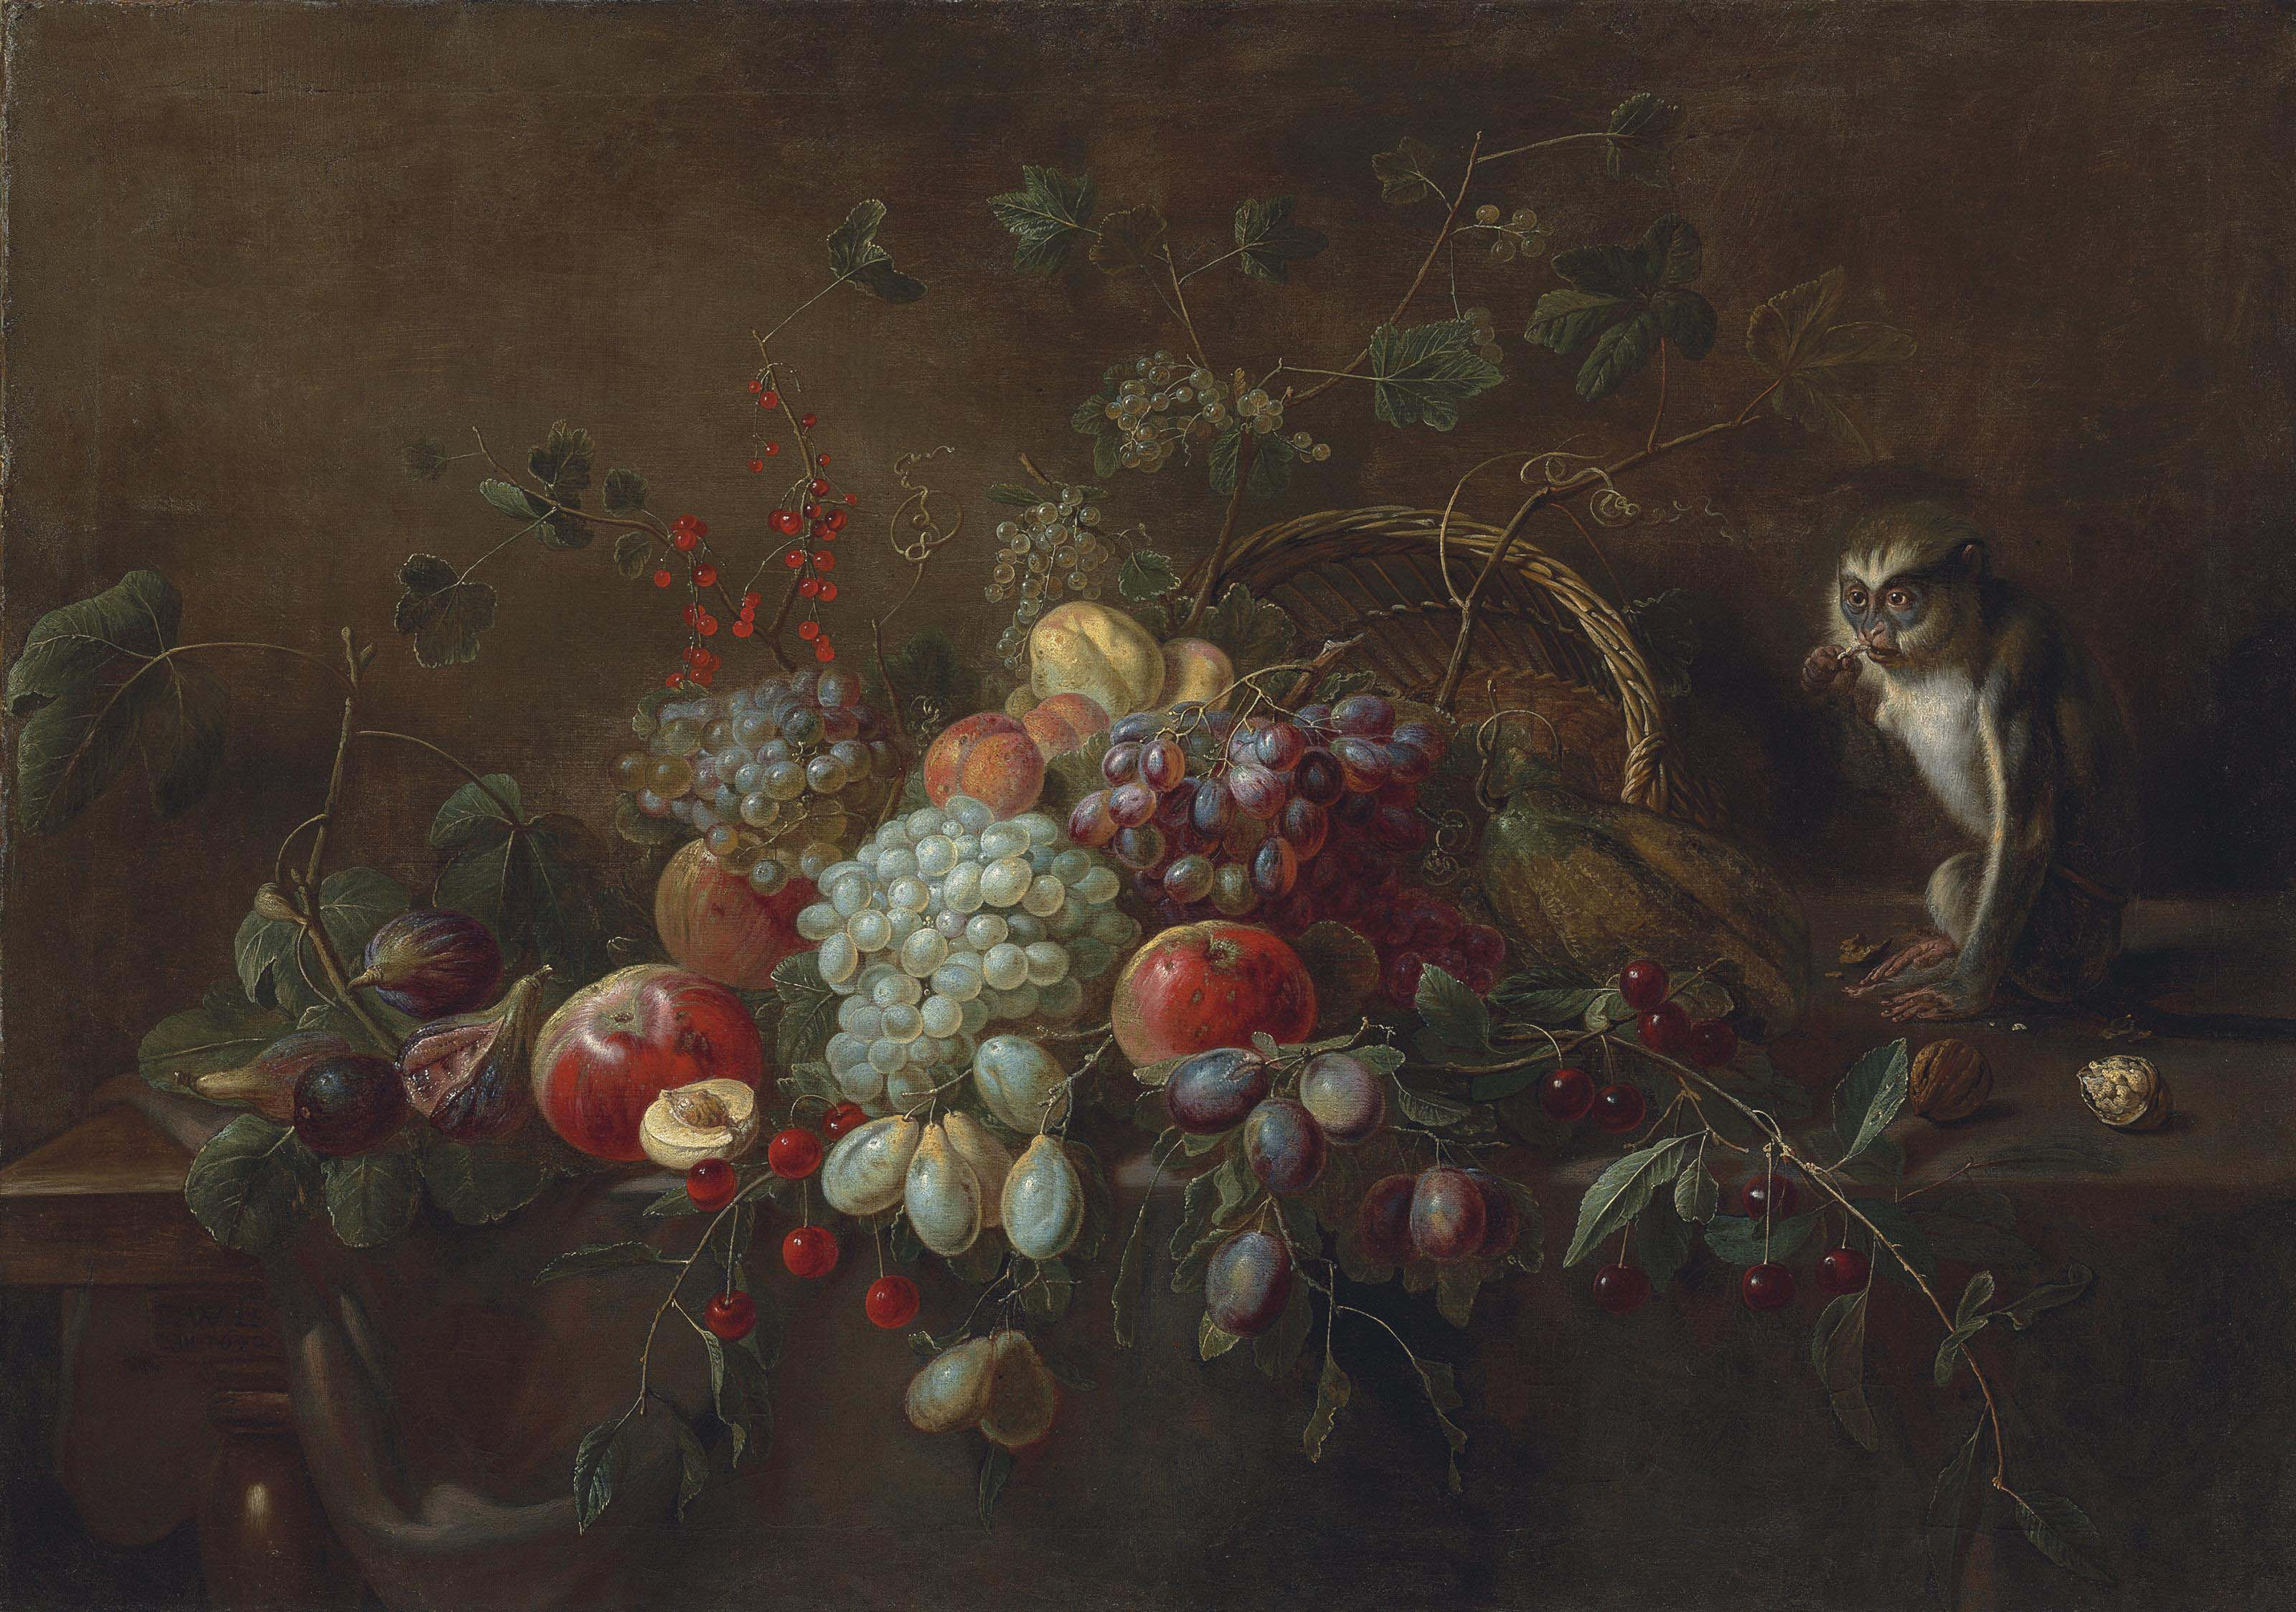 Grapes, apples, plums, figs and other fruit on a partly draped wooden table, a monkey eating walnuts by an upturned woven basket